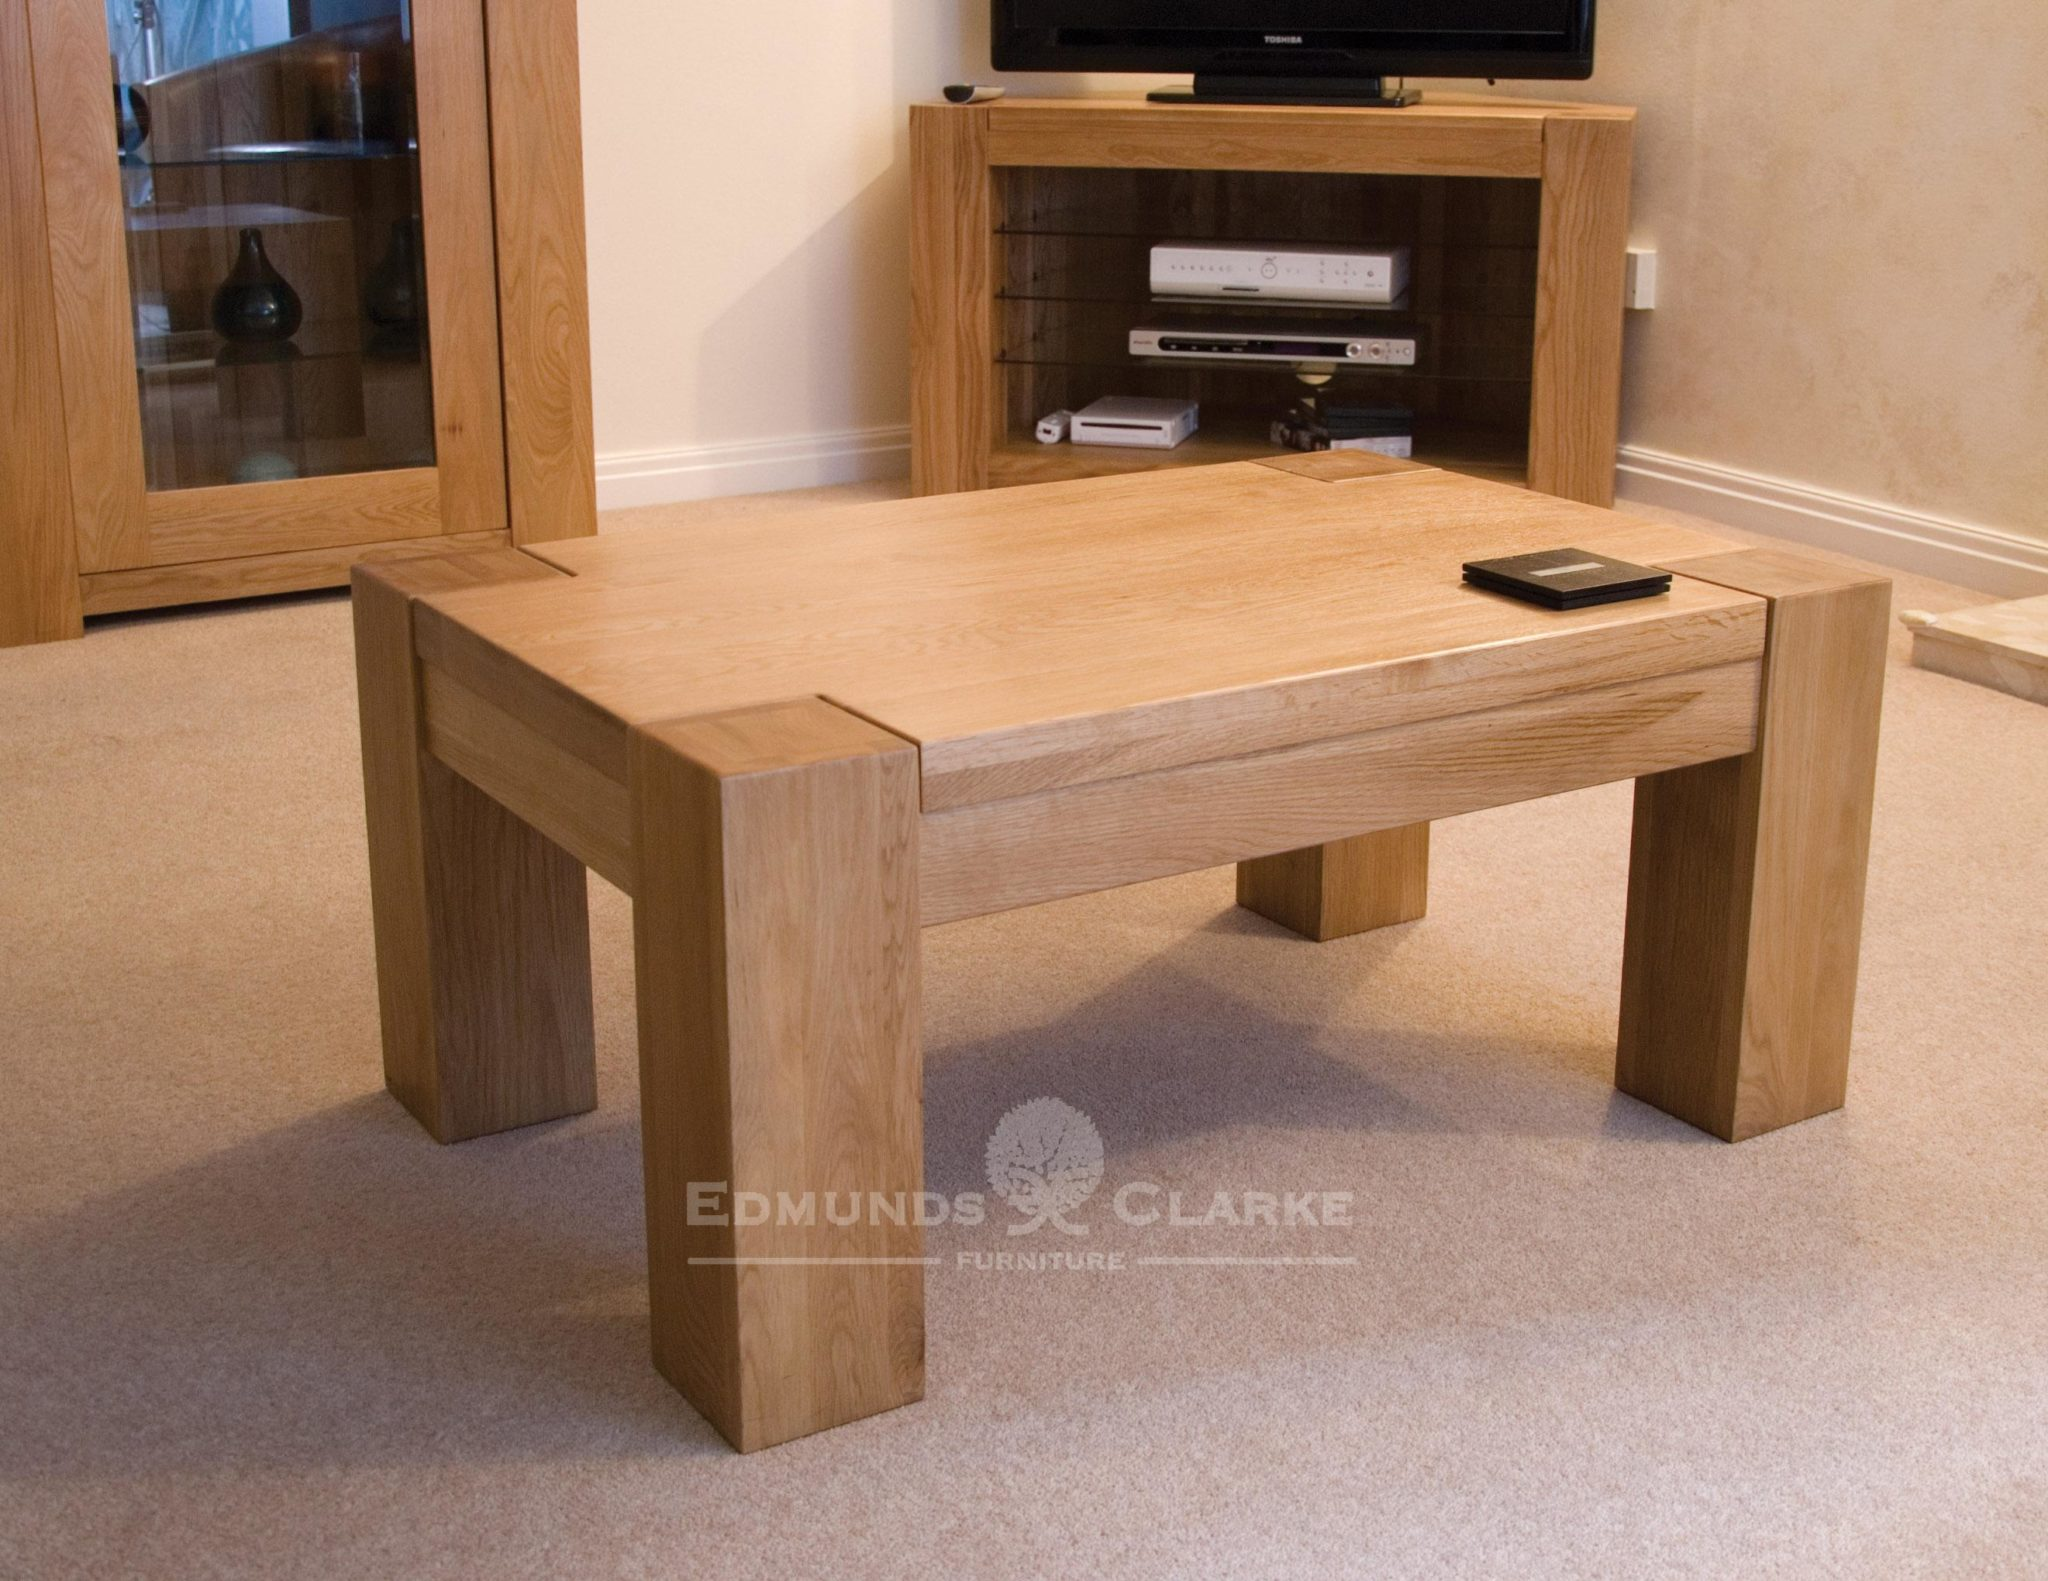 Newmarket 3' x 2' coffee table chunky solid oak